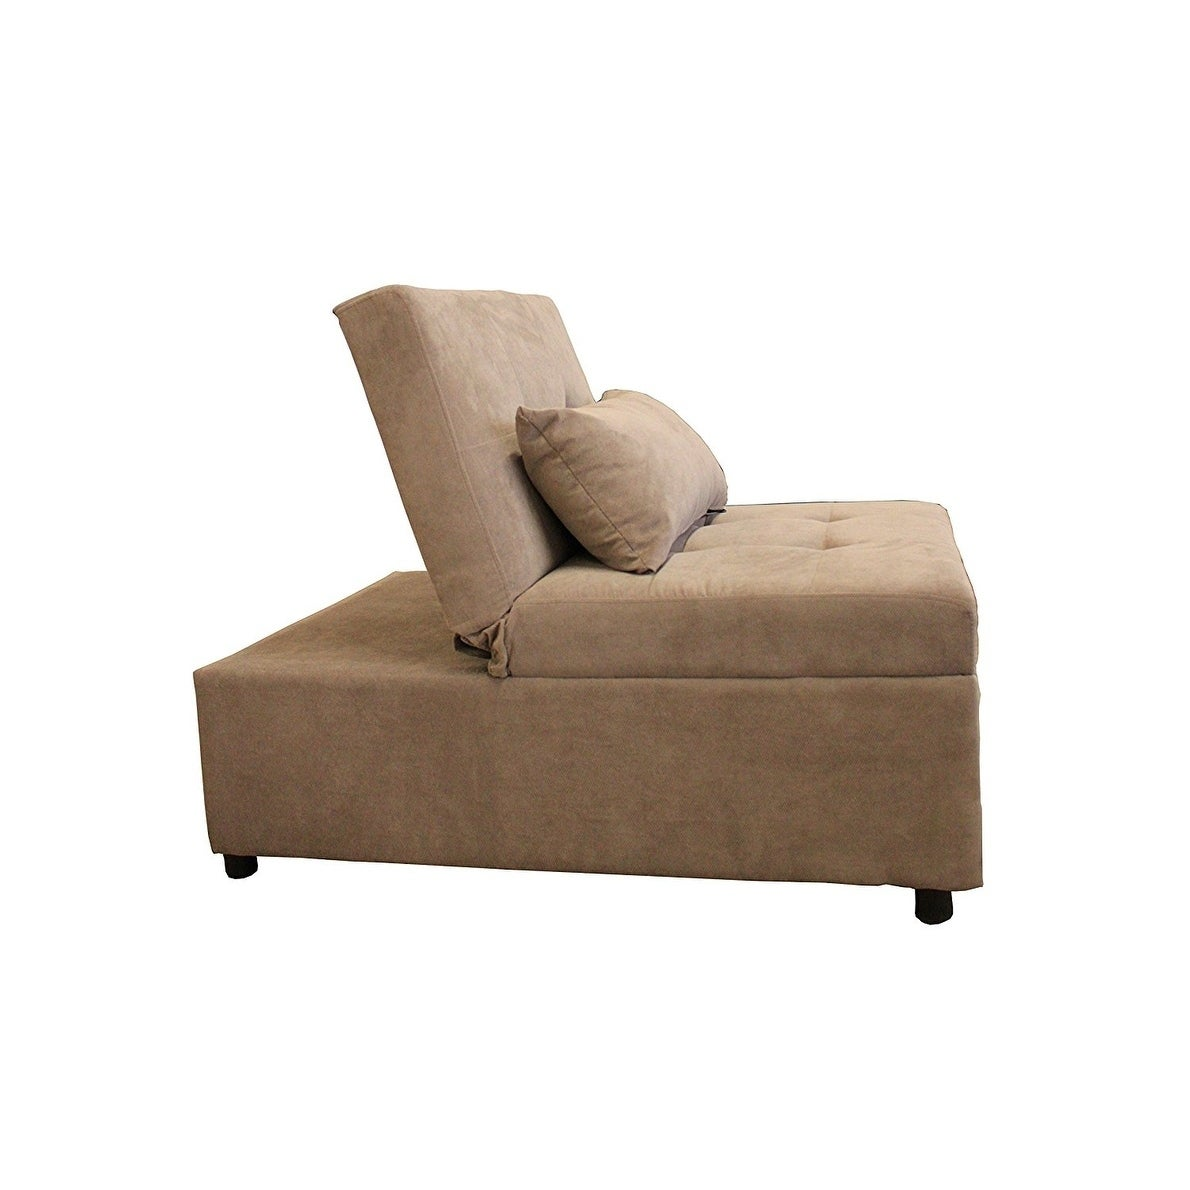 Shop Mini Max Decor Modern 2 In 1 Pullout Sofa   On Sale   Free Shipping  Today   Overstock.com   21158549